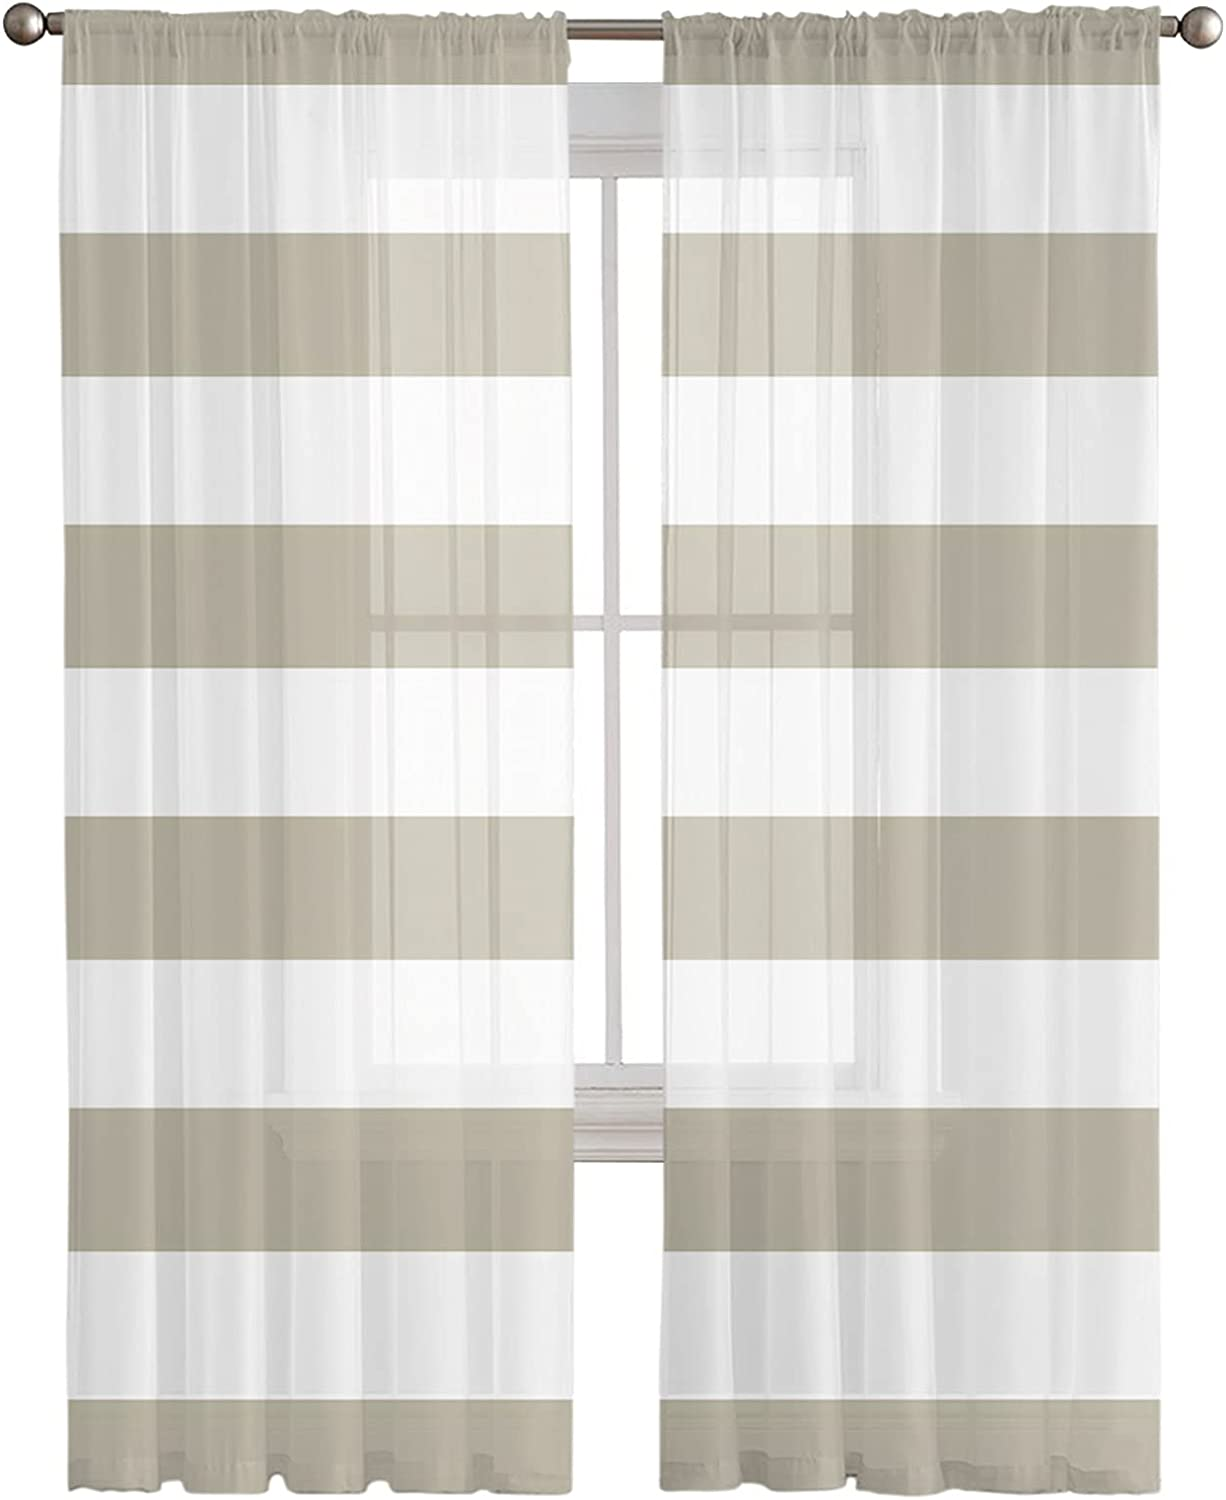 Sheer All stores are sold Curtains 72 Inches Long Semi 2 Panels Stripe Seasonal Wrap Introduction Voile